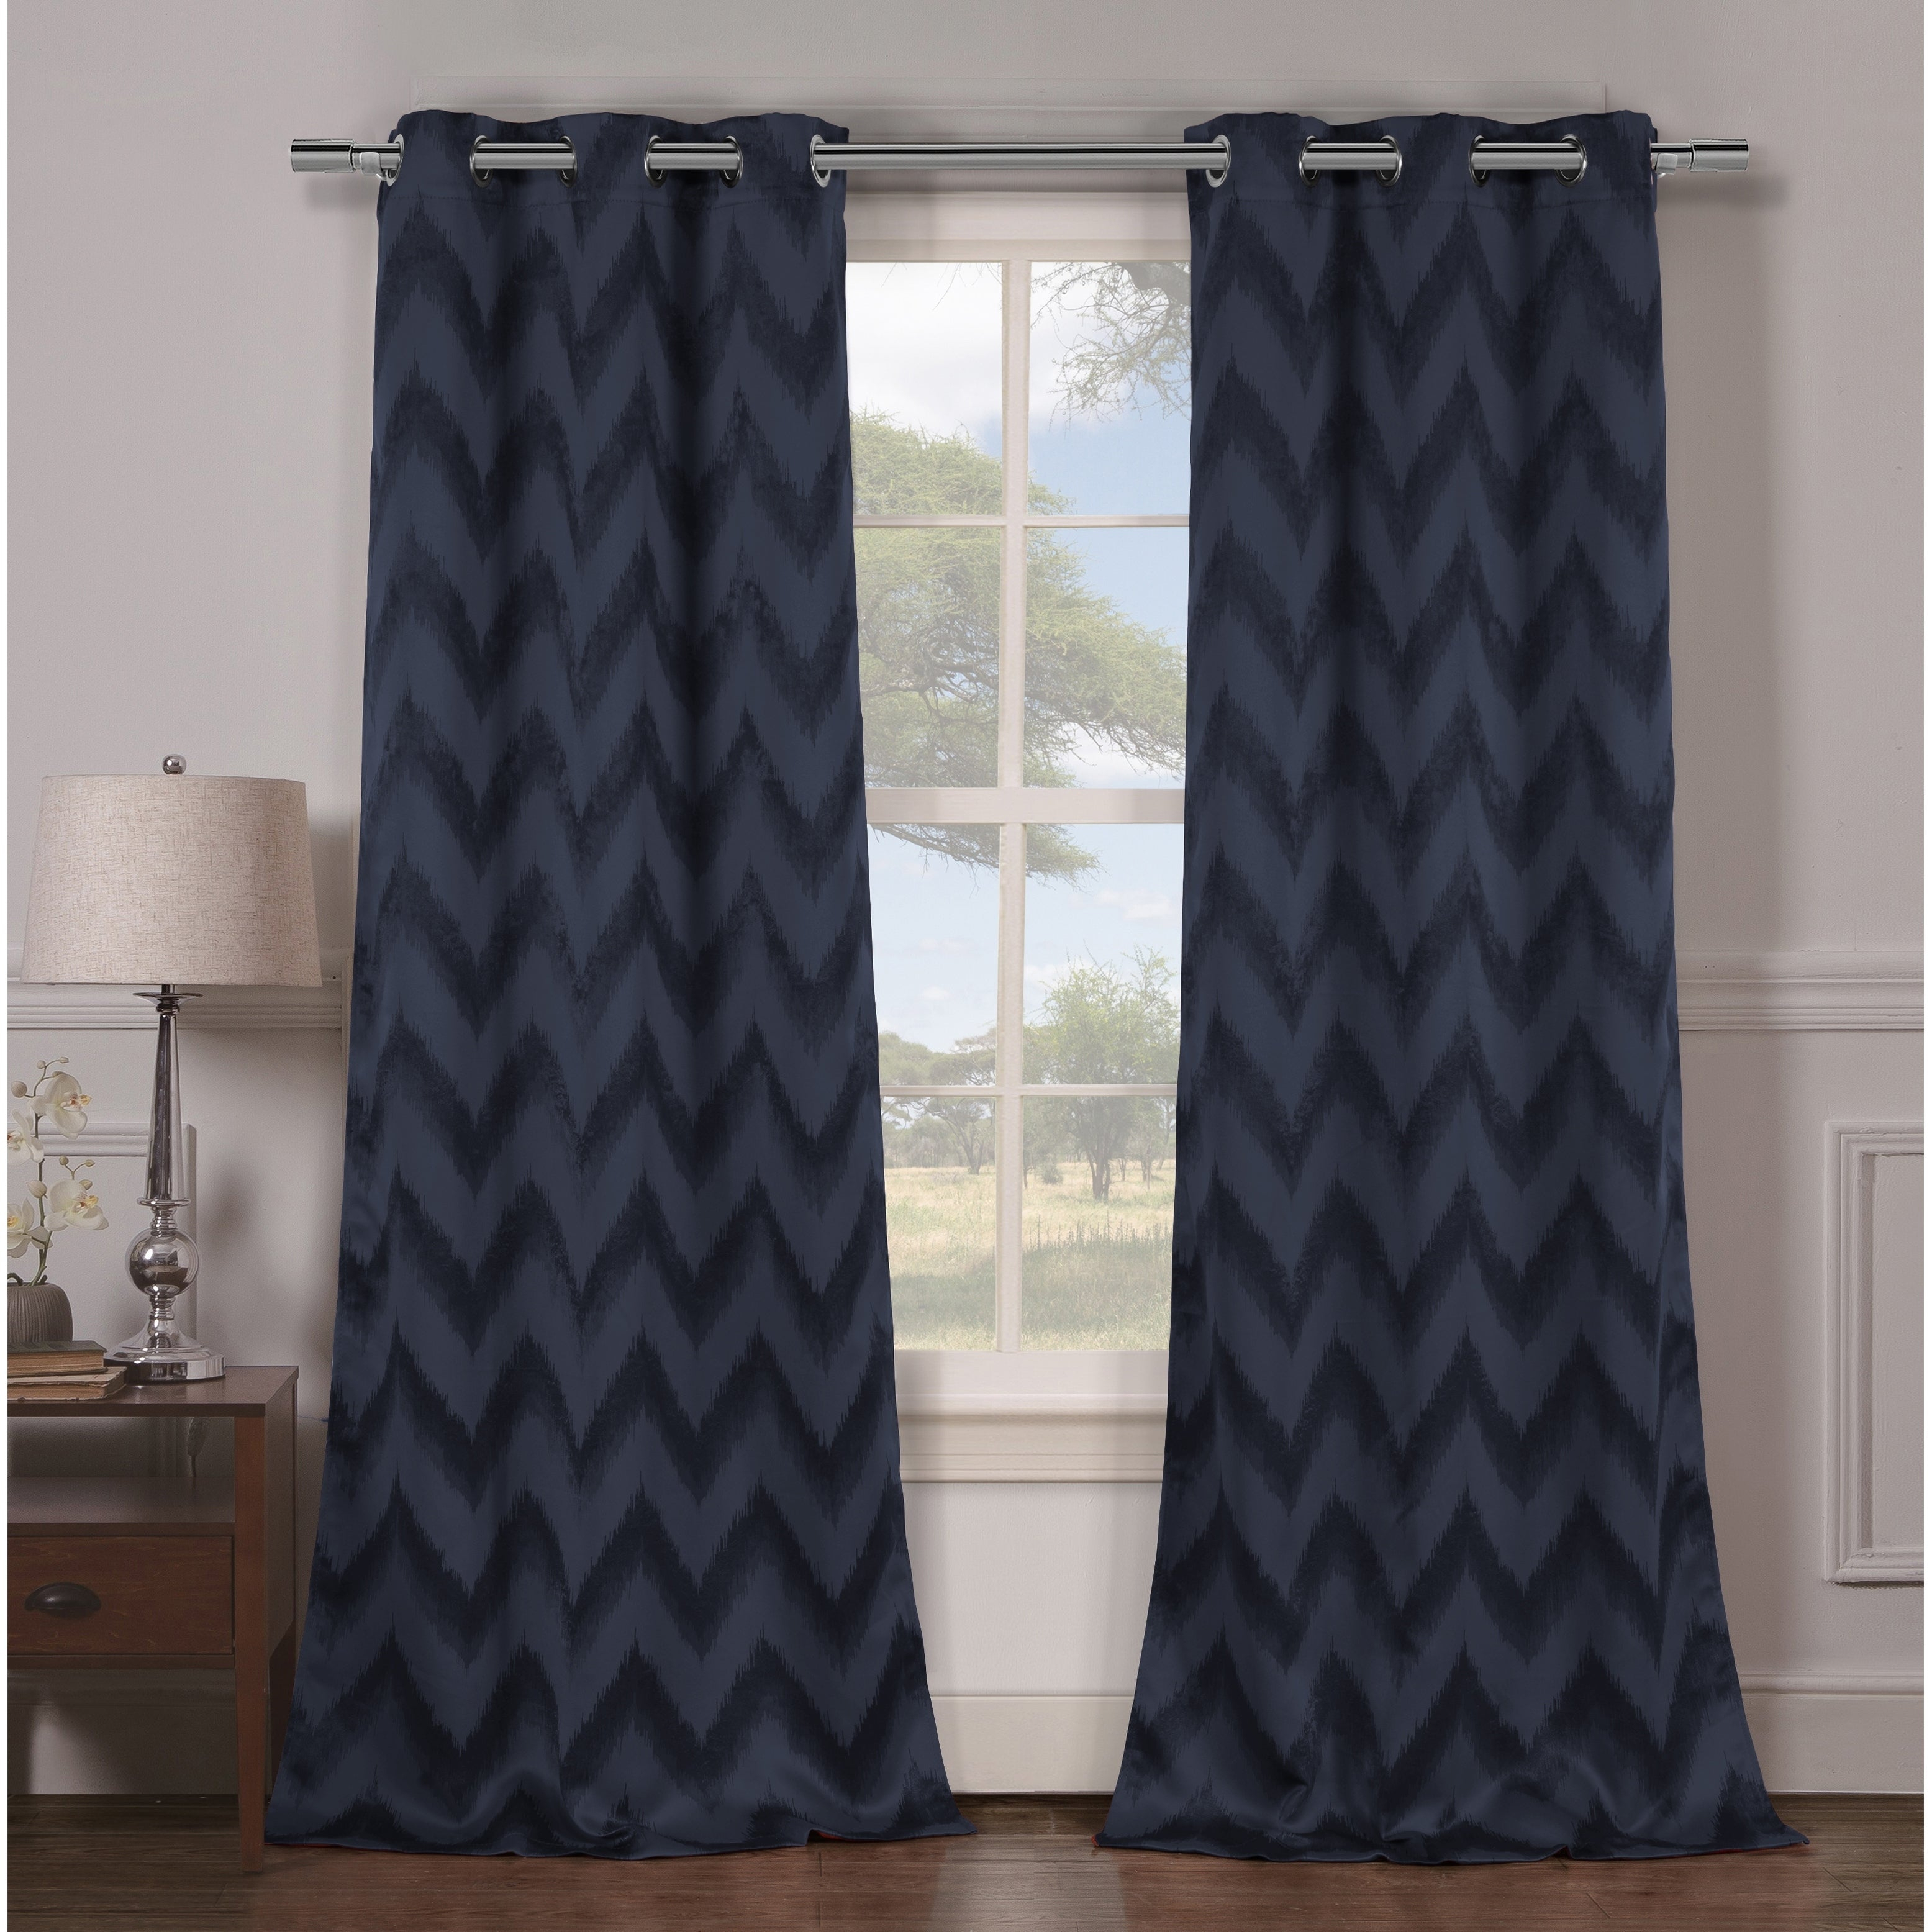 Detalles Acerca De Duck River Lysanna Grommet Top Thermal Insulated Blackout Curtain Panel Pair – Throughout Thermal Insulated Blackout Grommet Top Curtain Panel Pairs (View 5 of 30)